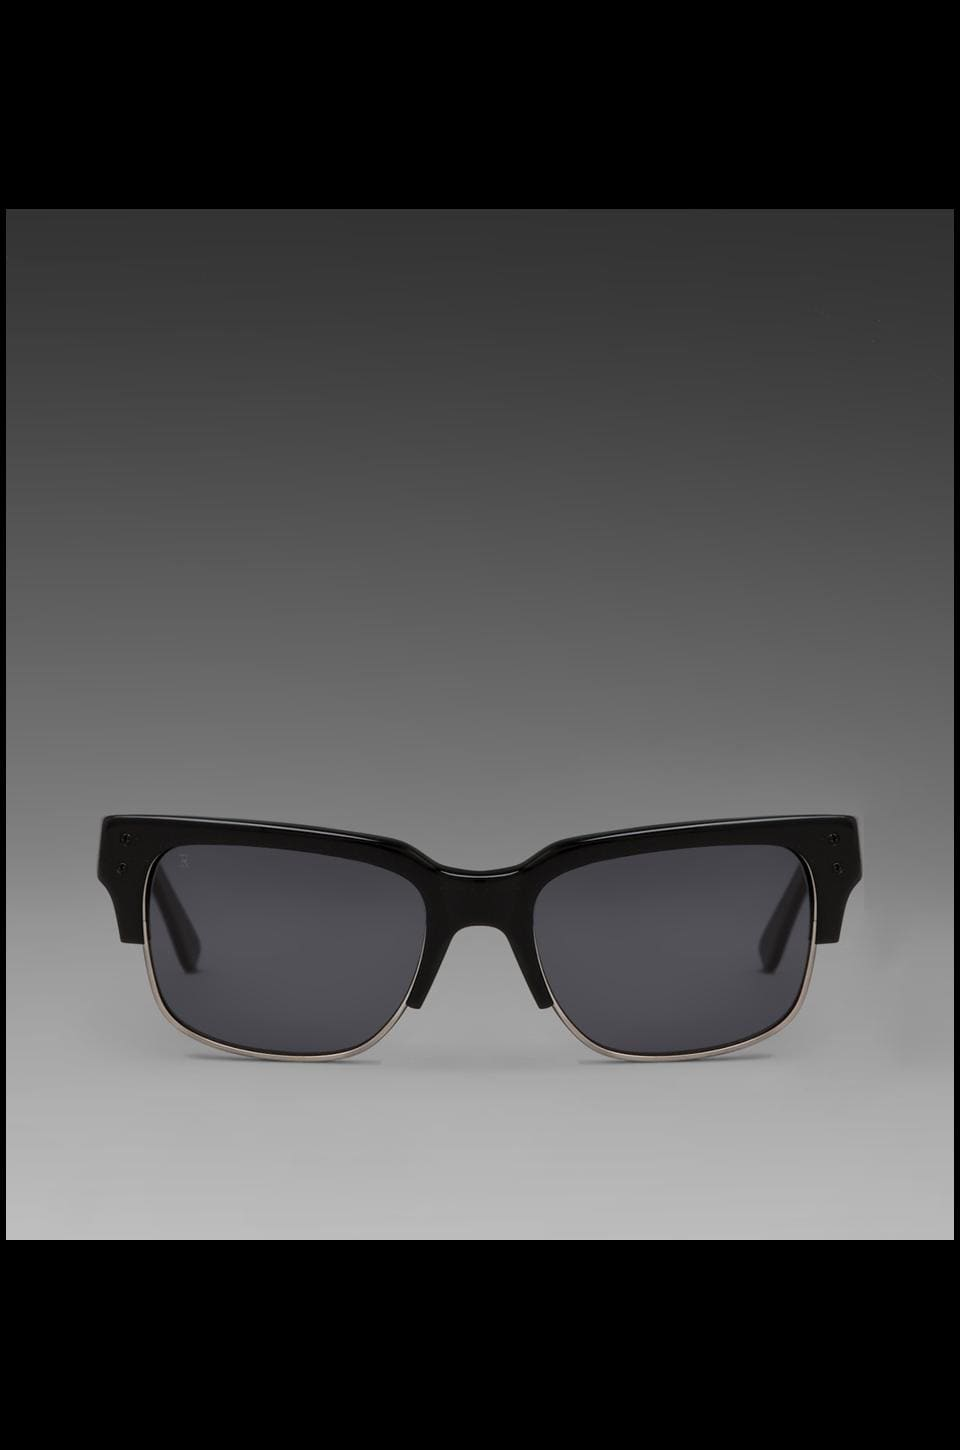 RAEN Polarized Underwood Sunglass in All Black